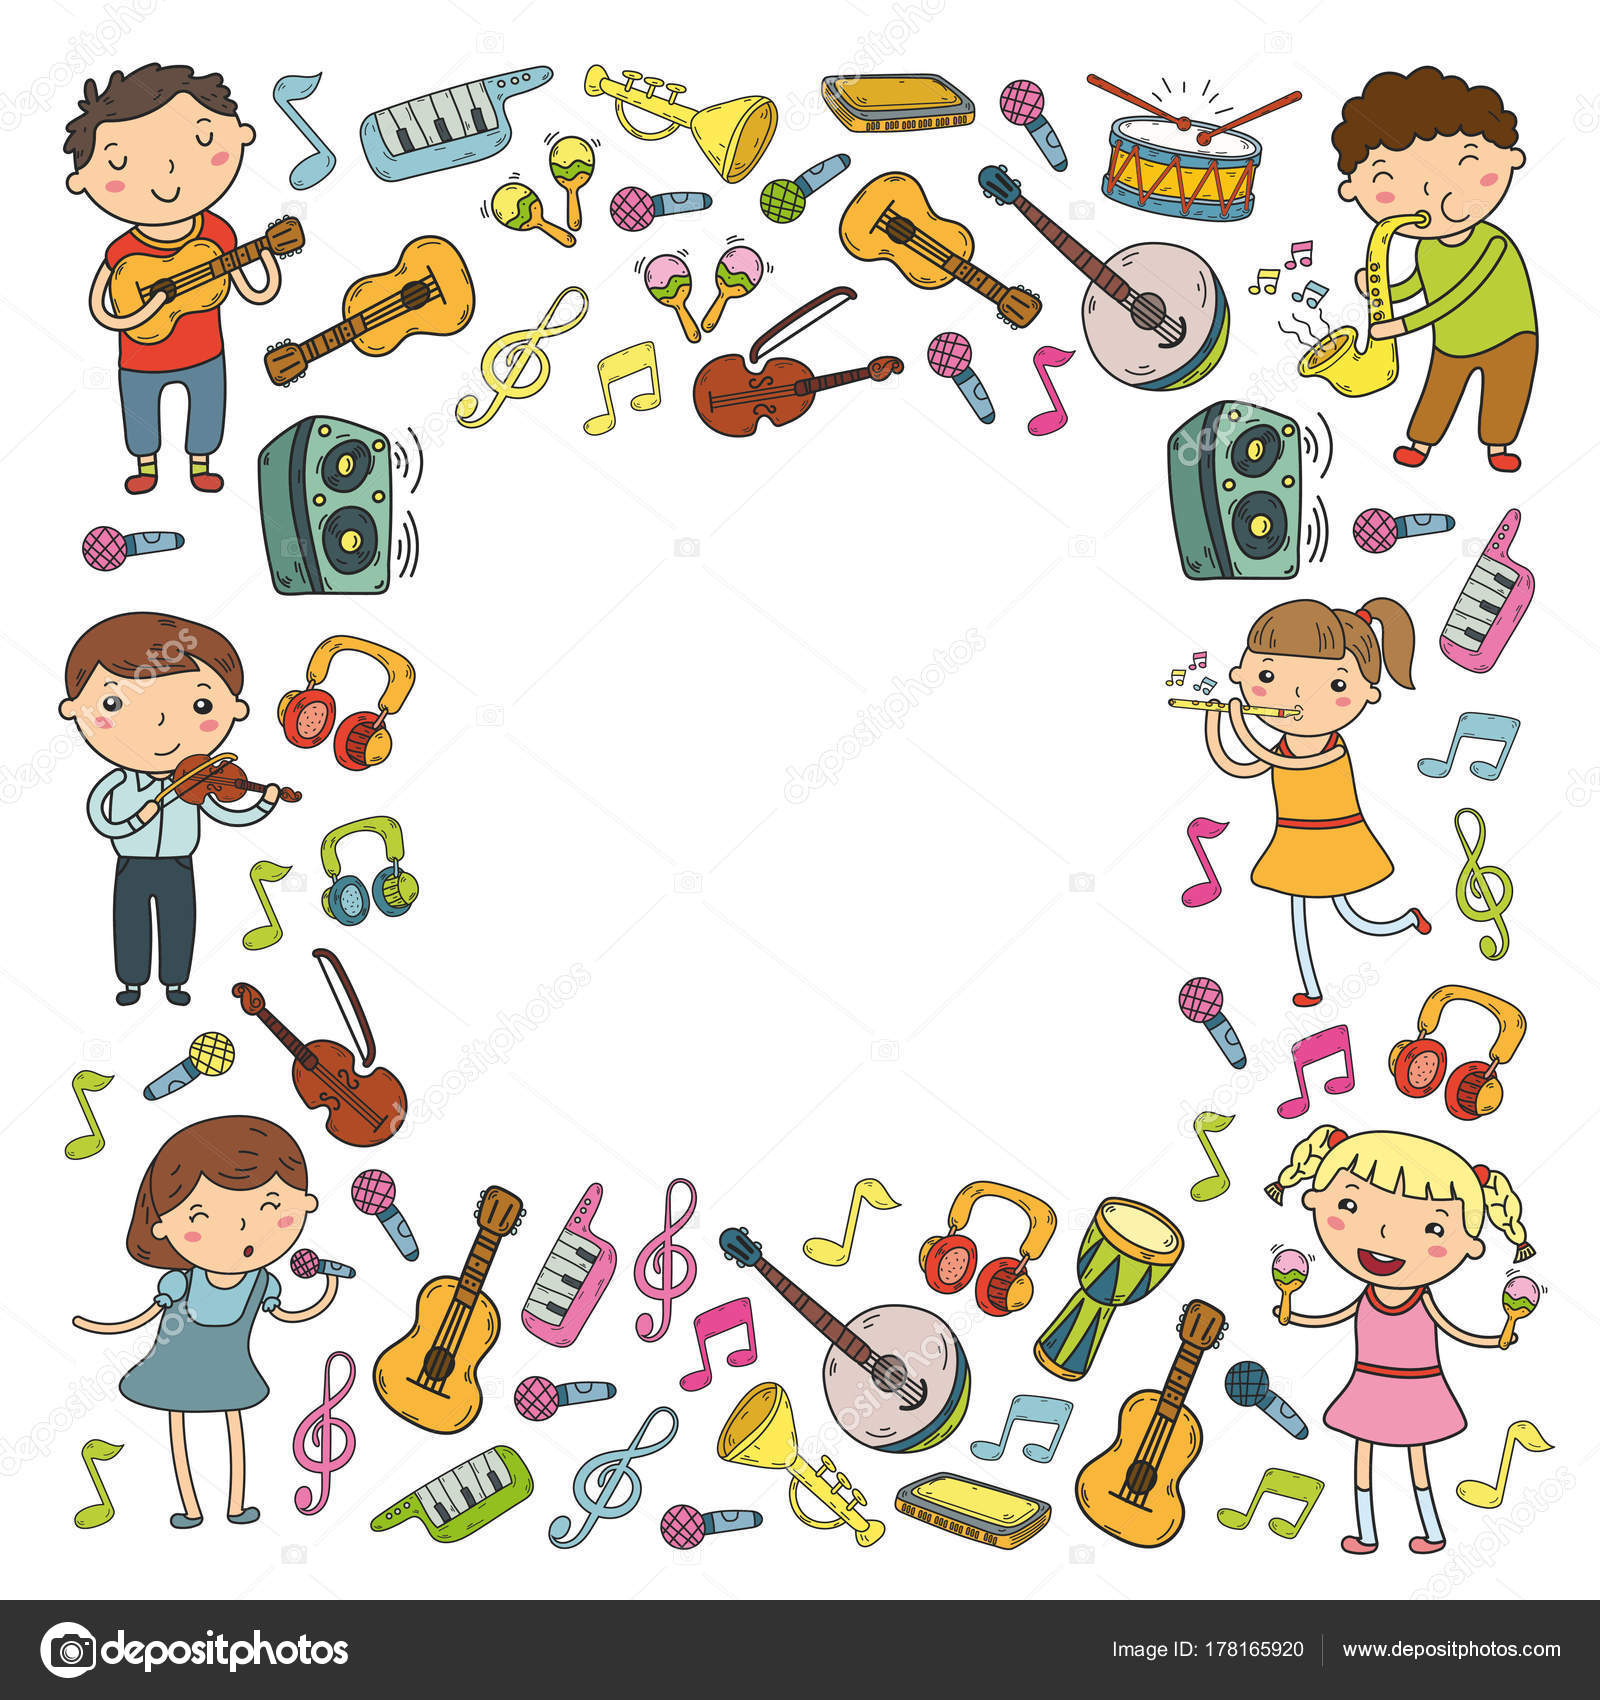 Children singing songs, playing musical instruments Kindergarten Music school for kids Doodle icon collection Illustration for children music lessons ...